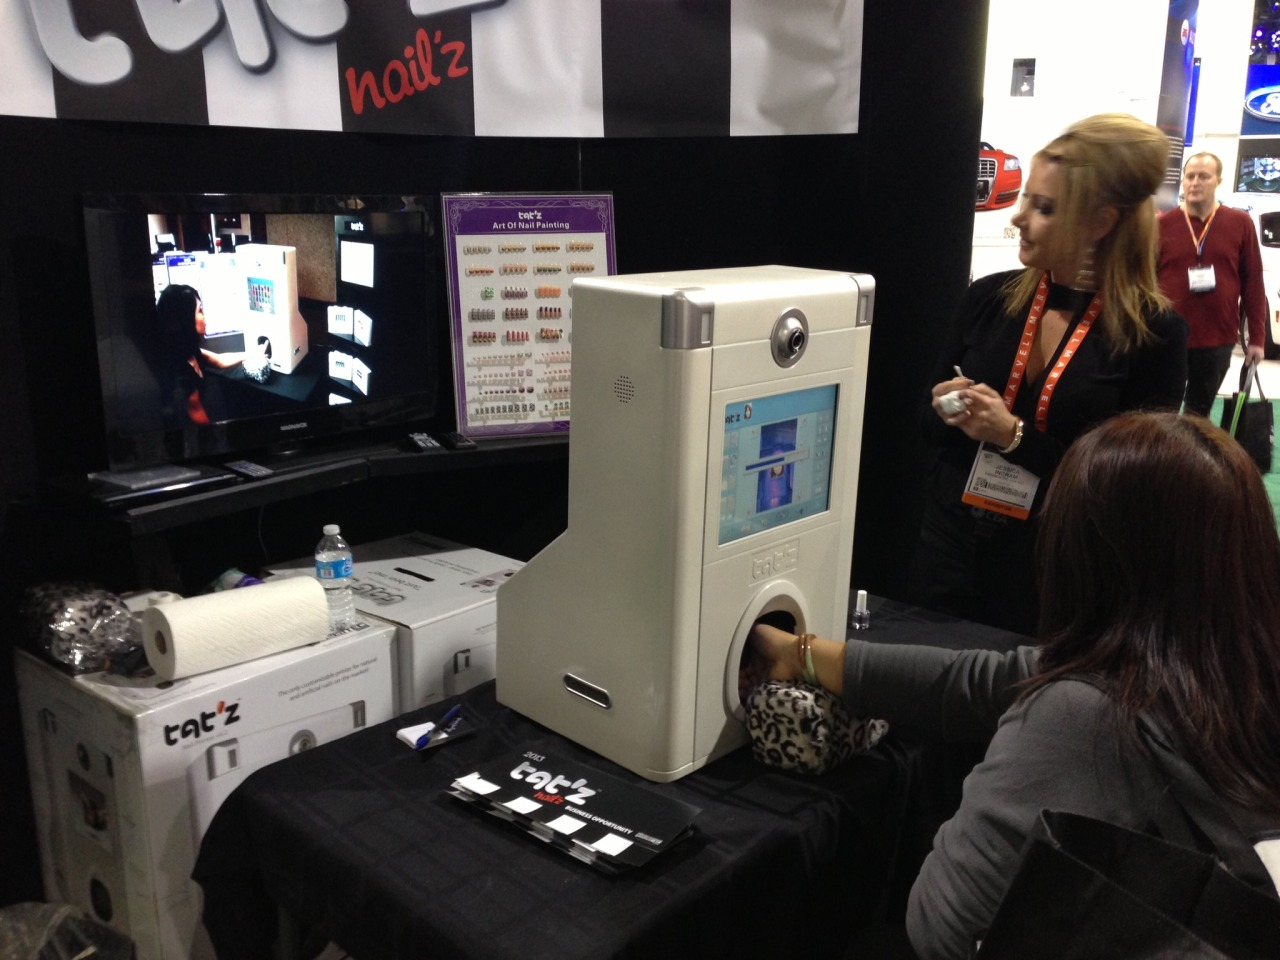 Thing we saw at CES, a printer that directly prints photos onto your nails. Just hold still for a sec, kay?